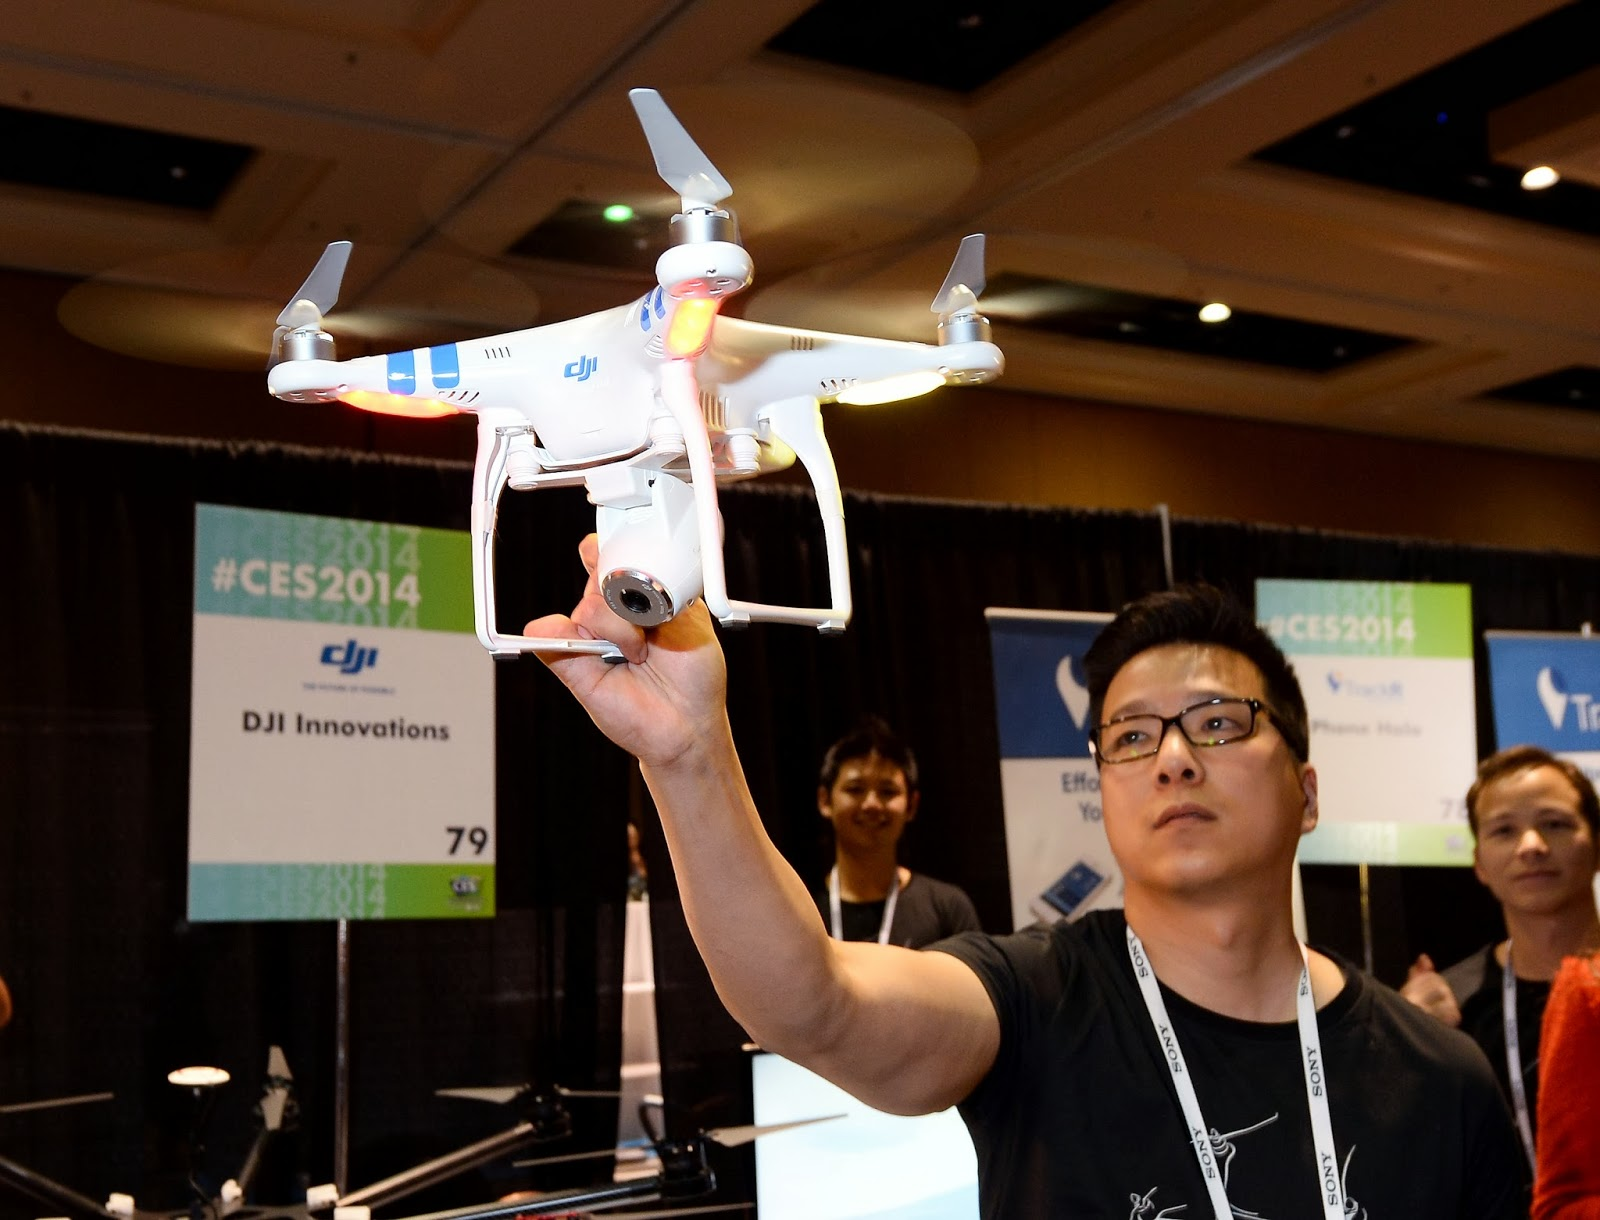 2 Vision, Aerial, Annual, Camera, Consumer, DJI Phantom, Electronics, Exhibition, Feature, Innovation, International CES, Las Vegas, Photo, Product, Smartphone, System, Technology, Trade Show, USD, Video,